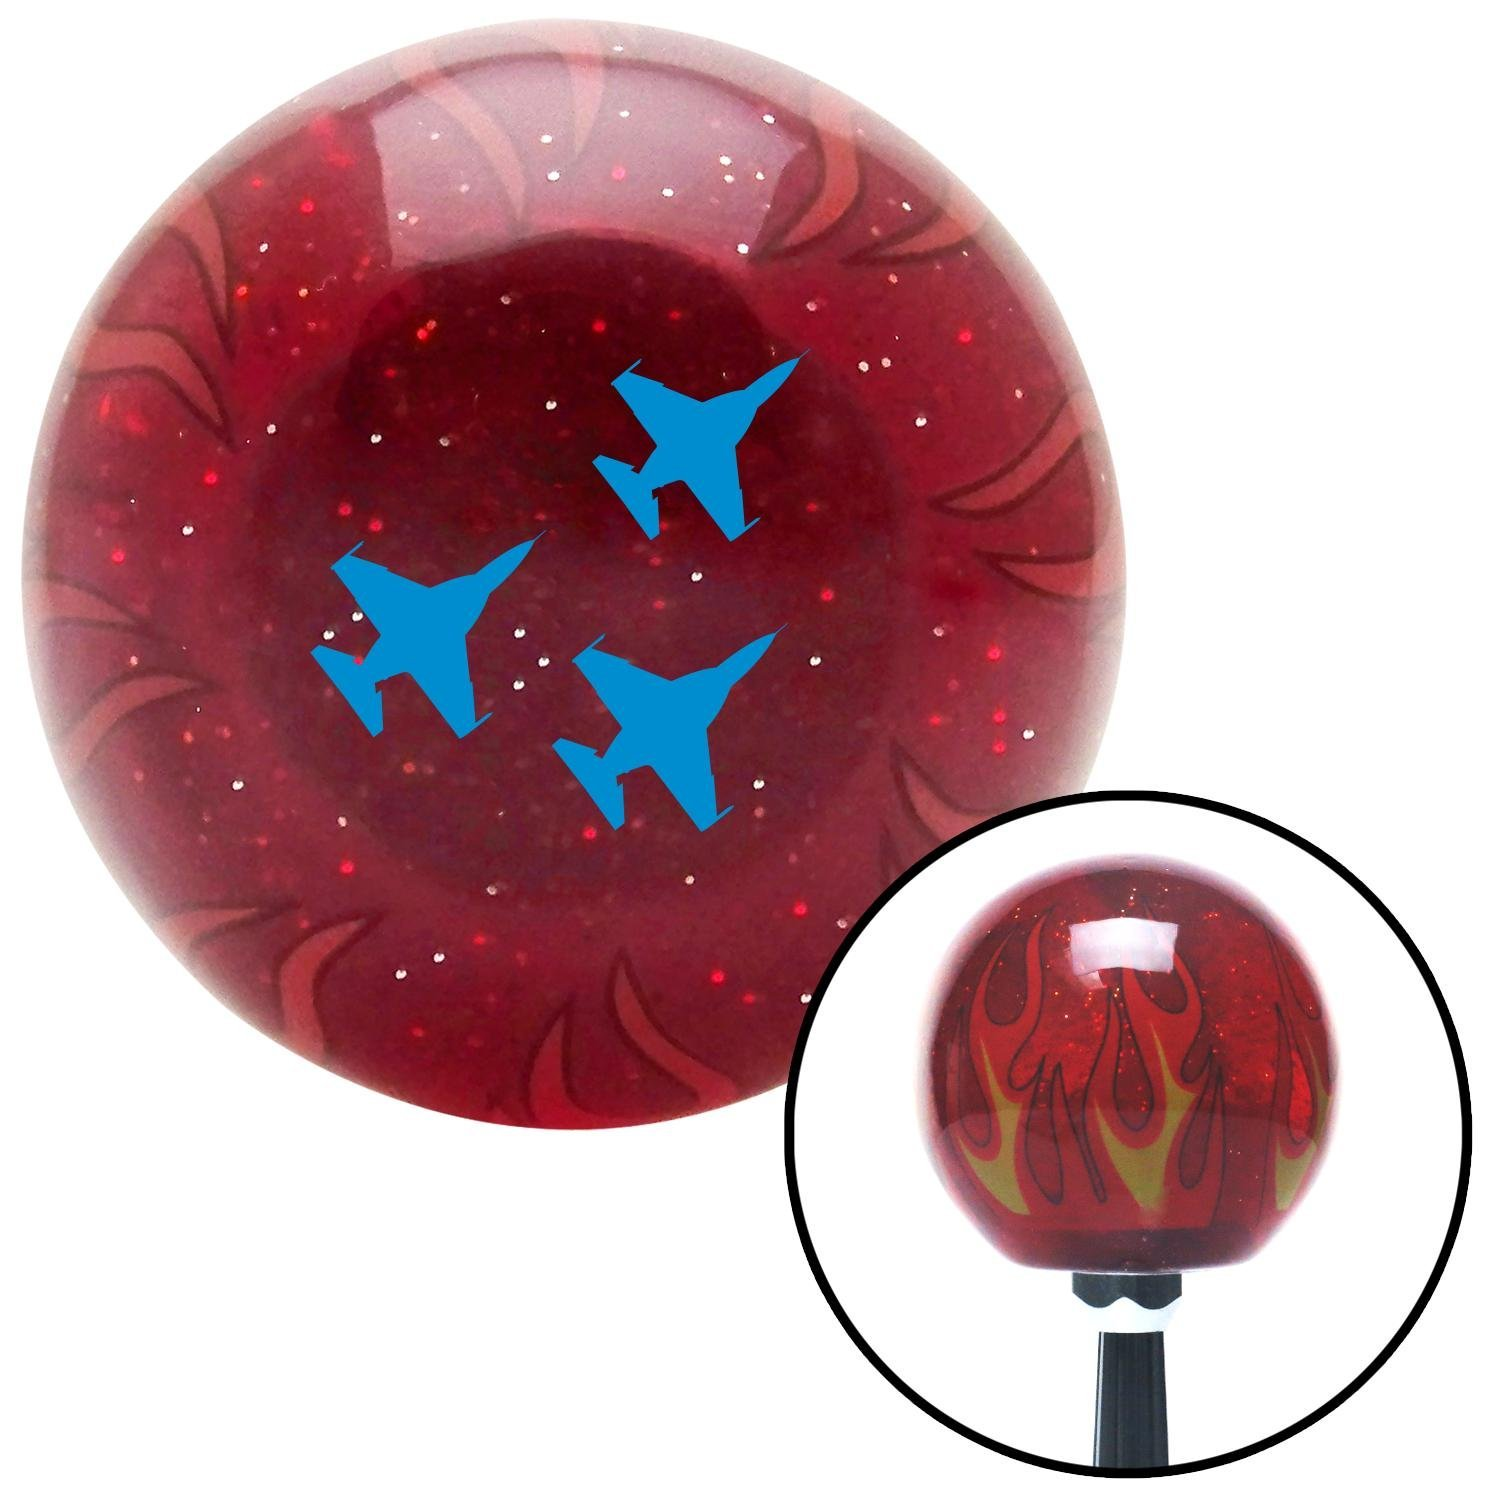 American Shifter 240211 Red Flame Metal Flake Shift Knob with M16 x 1.5 Insert Blue Jet Formation